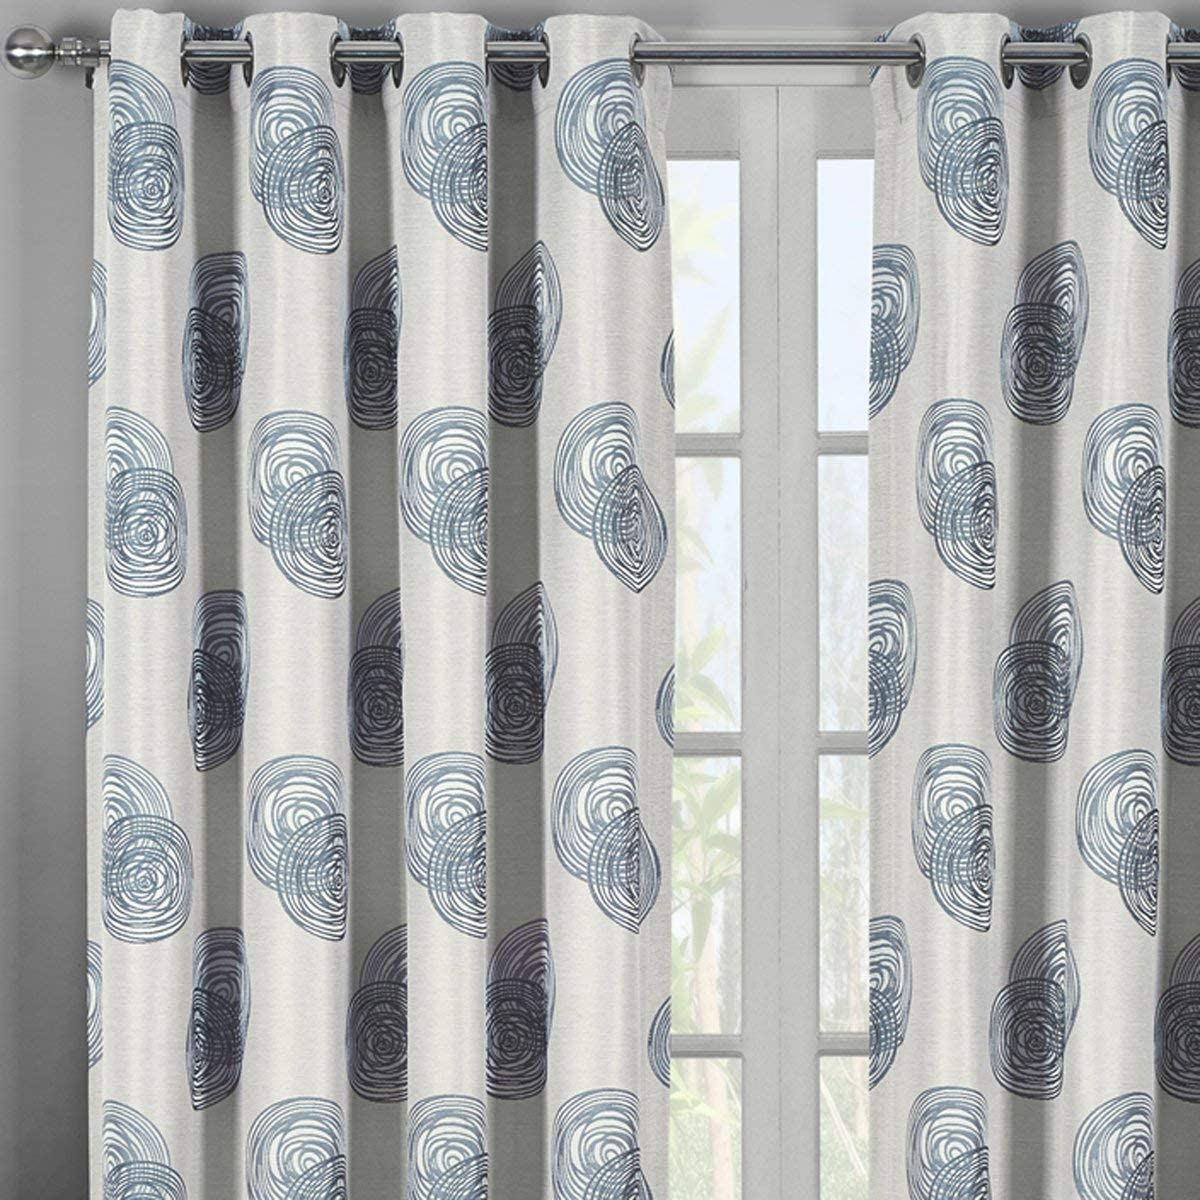 Royal Hotel Lafayetee Gray, Top Grommet Jacquard Window Curtain Panel, Set of 2 Panels, 108×120 Inches Pair